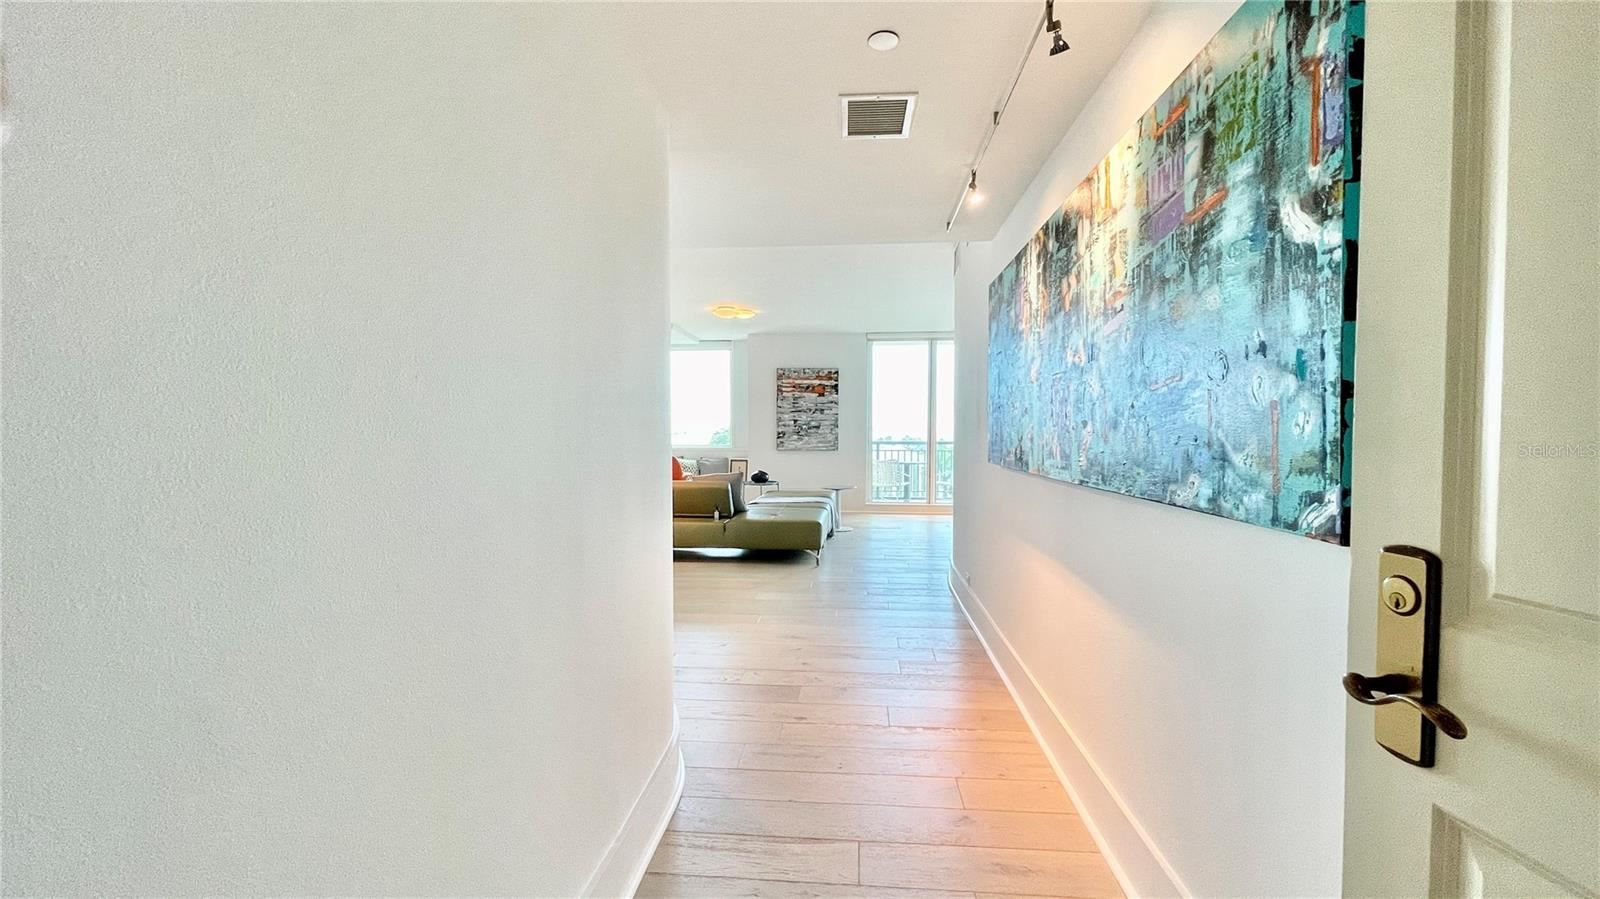 Photo of 800 N TAMIAMI TRAIL #505/507, SARASOTA, FL 34236 (MLS # A4464552)